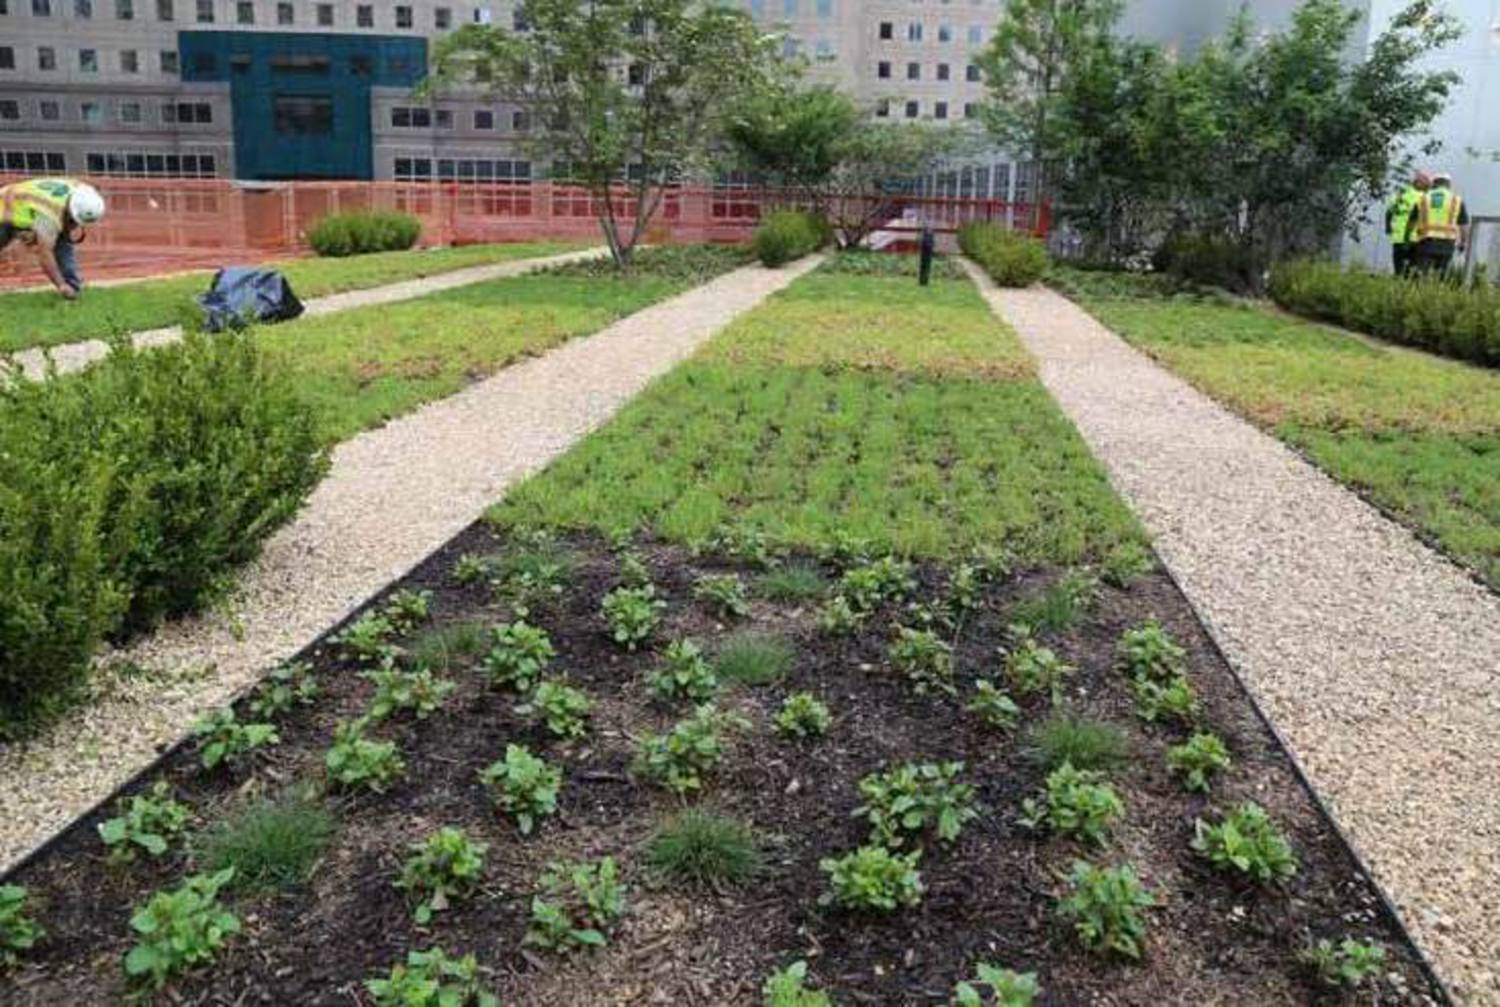 Planting Continues at Park Level of WTC Liberty Park